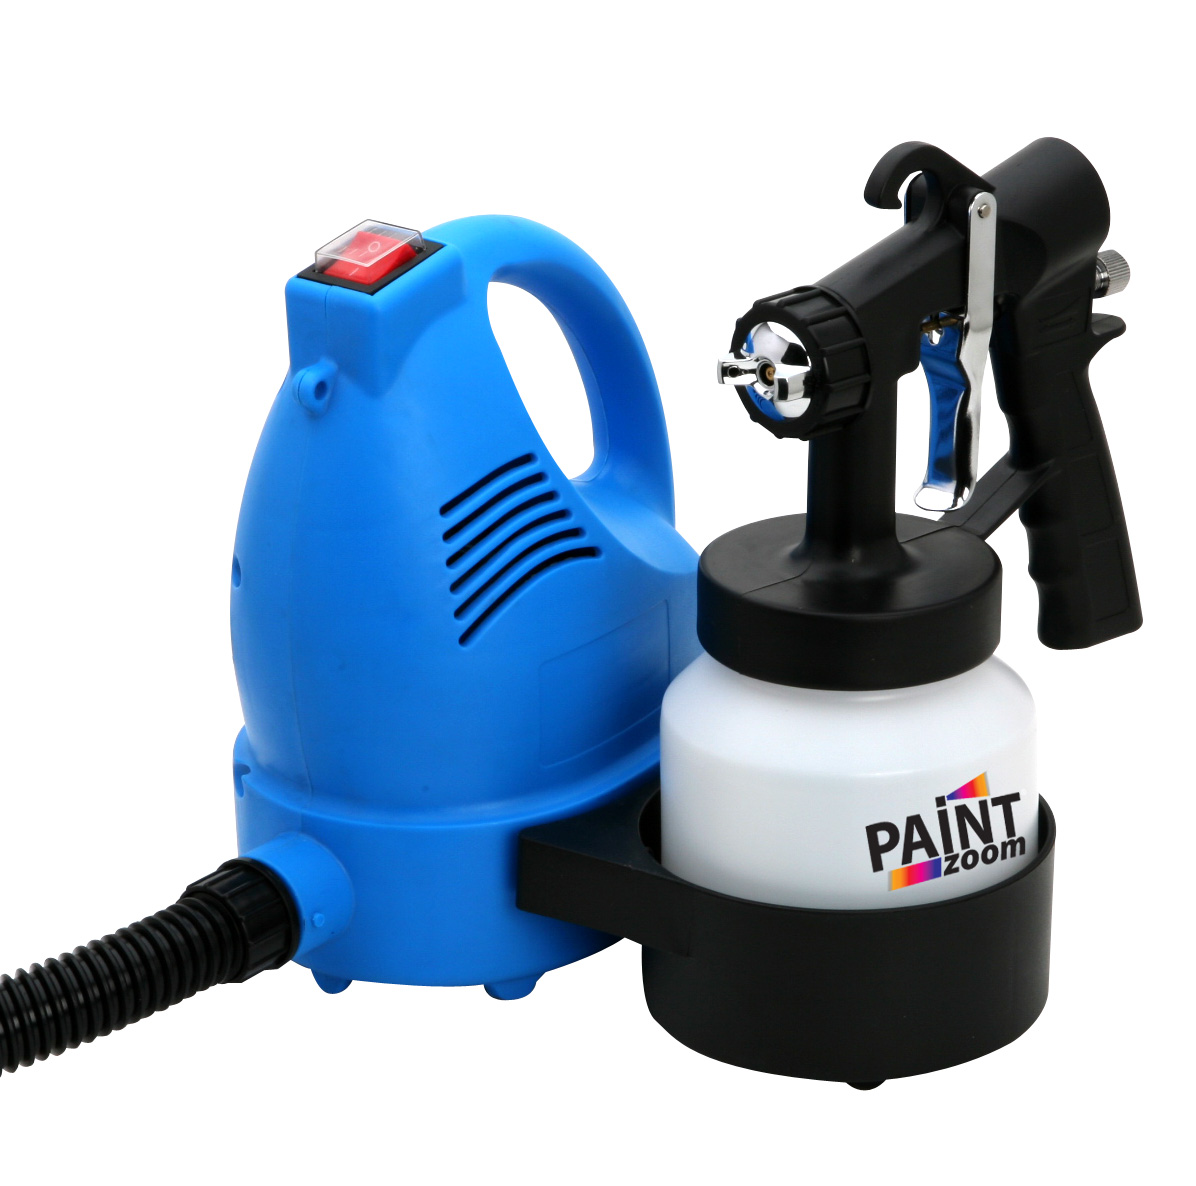 Northern response 39 s paint zoom paint sprayer offers - Paint zoom prezzo ...